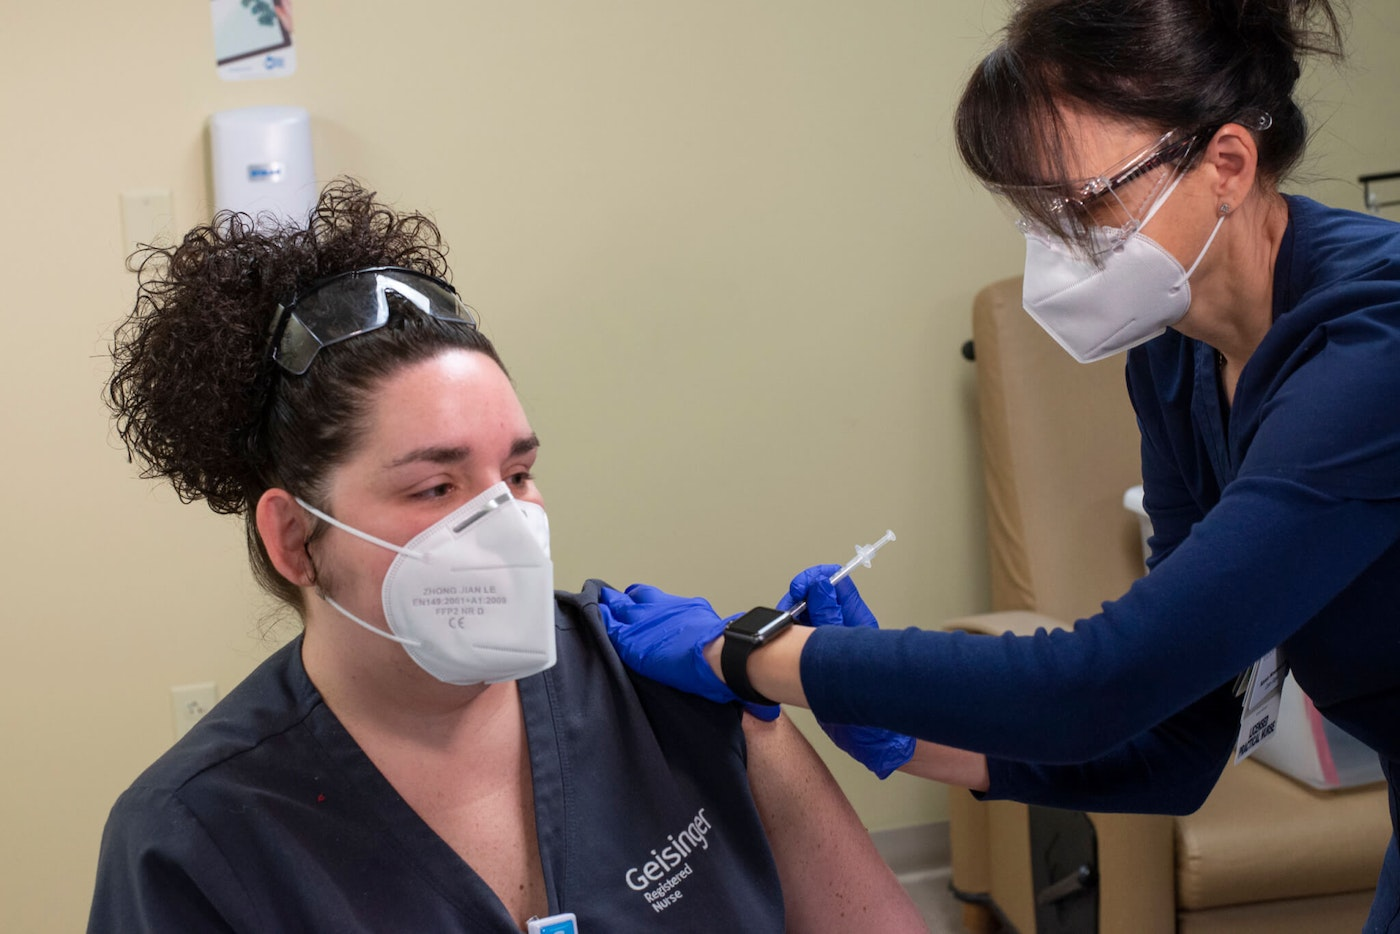 Registered nurse Tara Skutack is one of the first Geisinger front-line staff members to receive a COVID-19 vaccination. Karen Nowicki, LPN, at Geisinger Wyoming Valley Medical Center gave Skutack the first dose of the two-dose vaccine. (Courtesy of Geisinger)